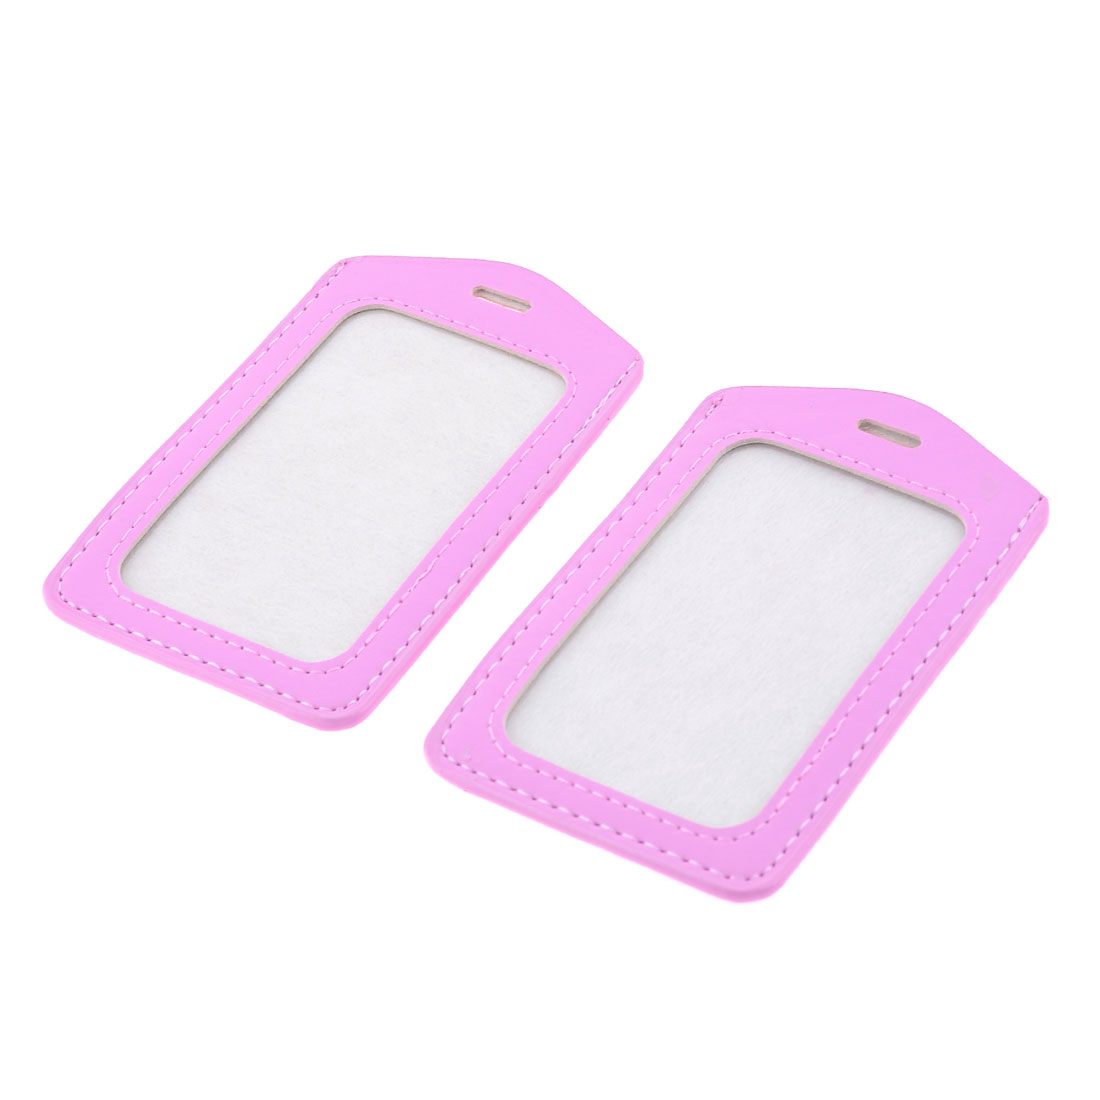 2 Pcs Pink Textured Faux Leather Vertical Office Work Card Holder